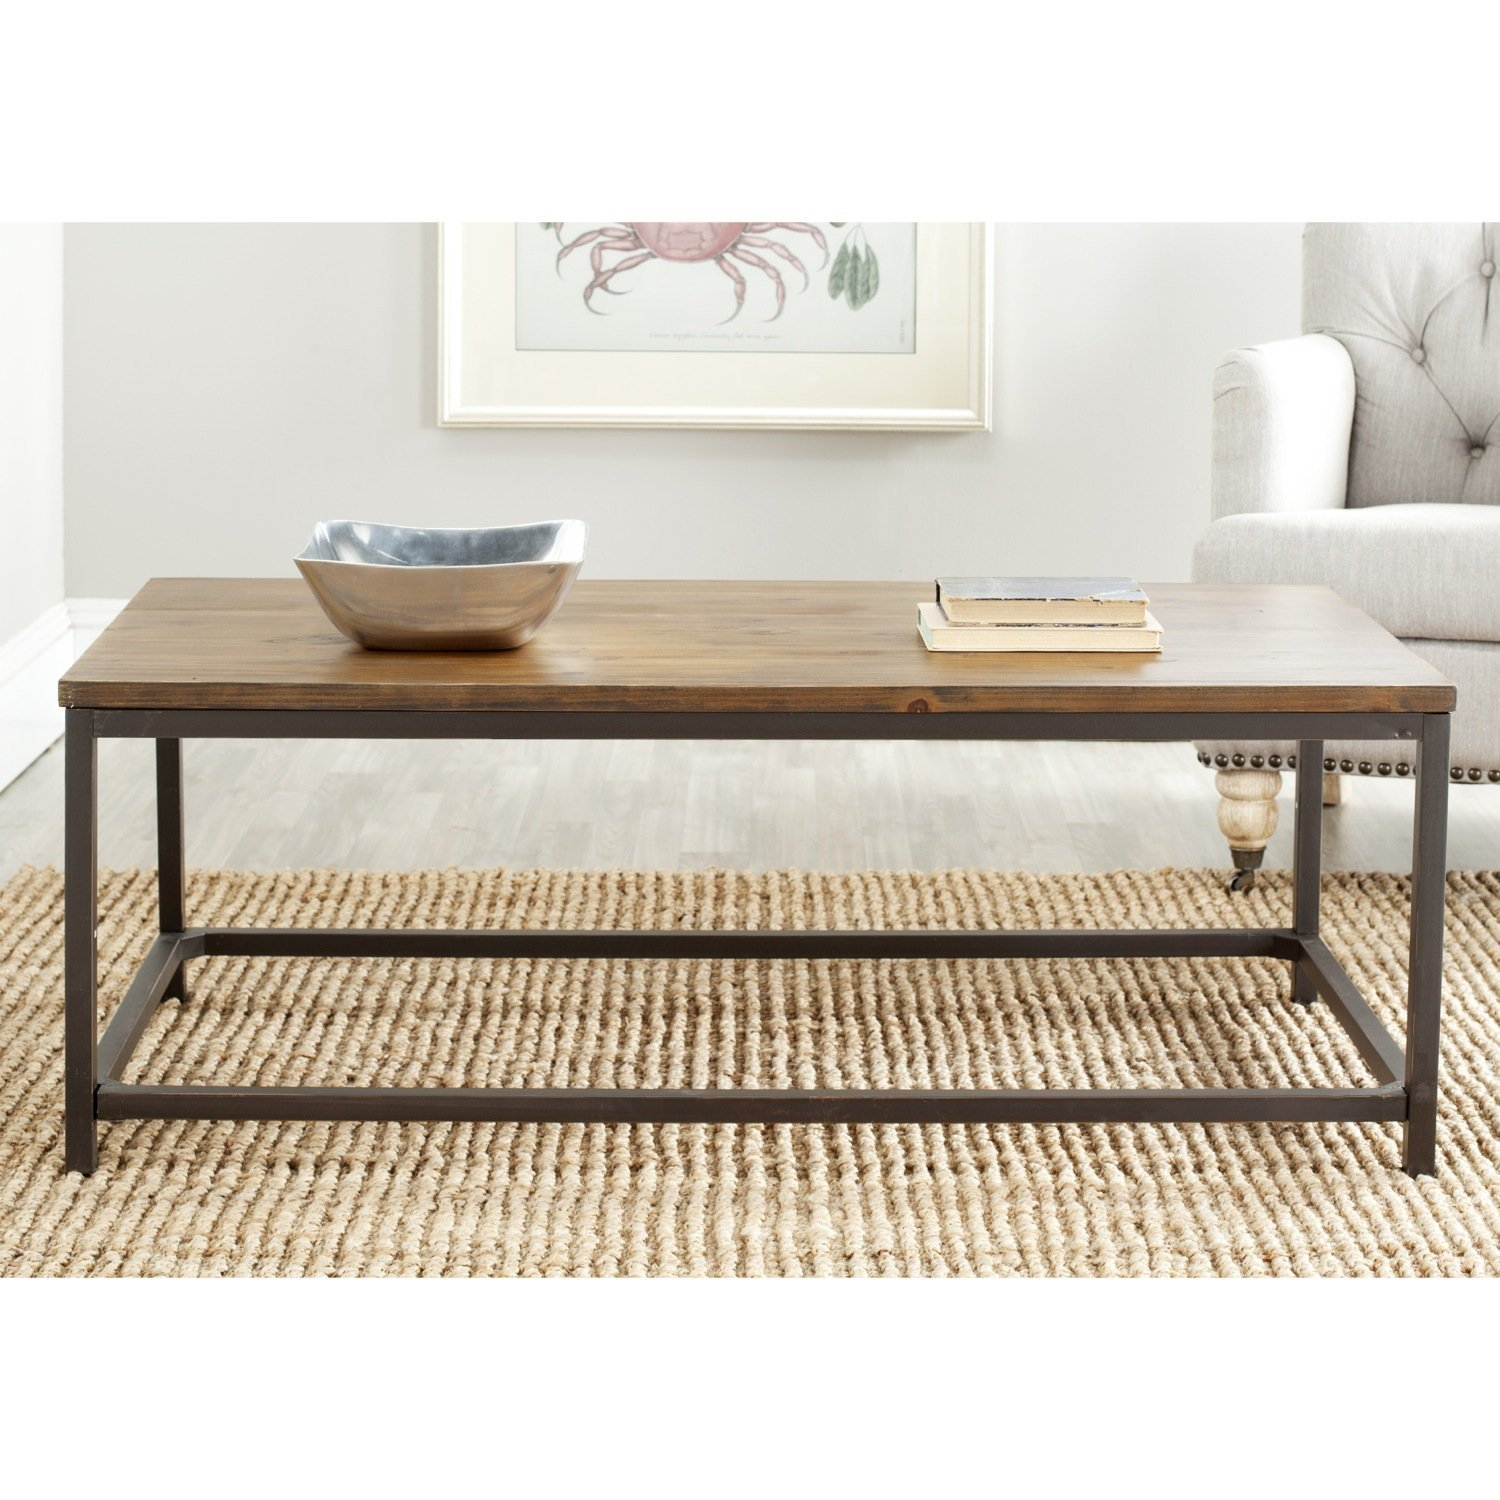 Fixer upper kitchens season 1 - Fixer Upper Season 1 Episode 2 Industrial Coffee Table